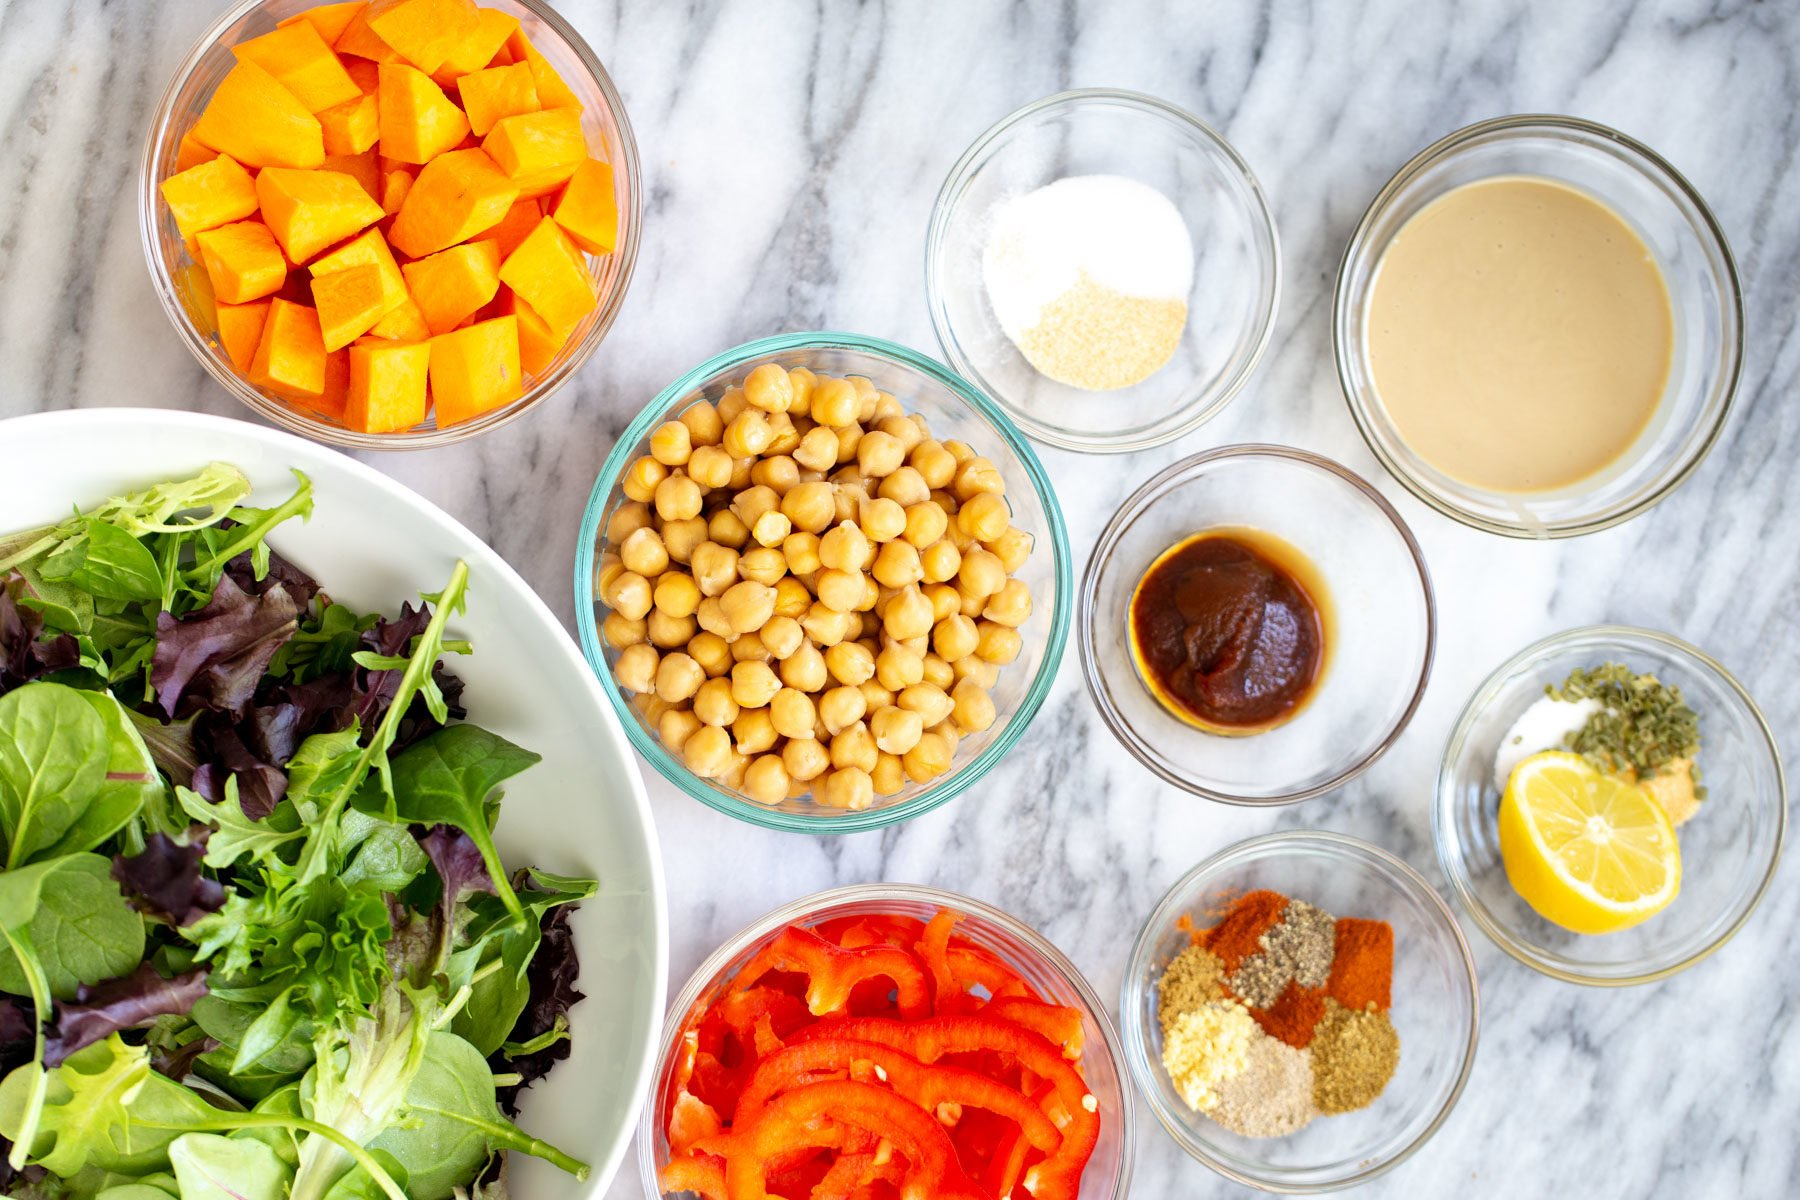 ingredients needed for making salad sweet potato chickpea salad bowls